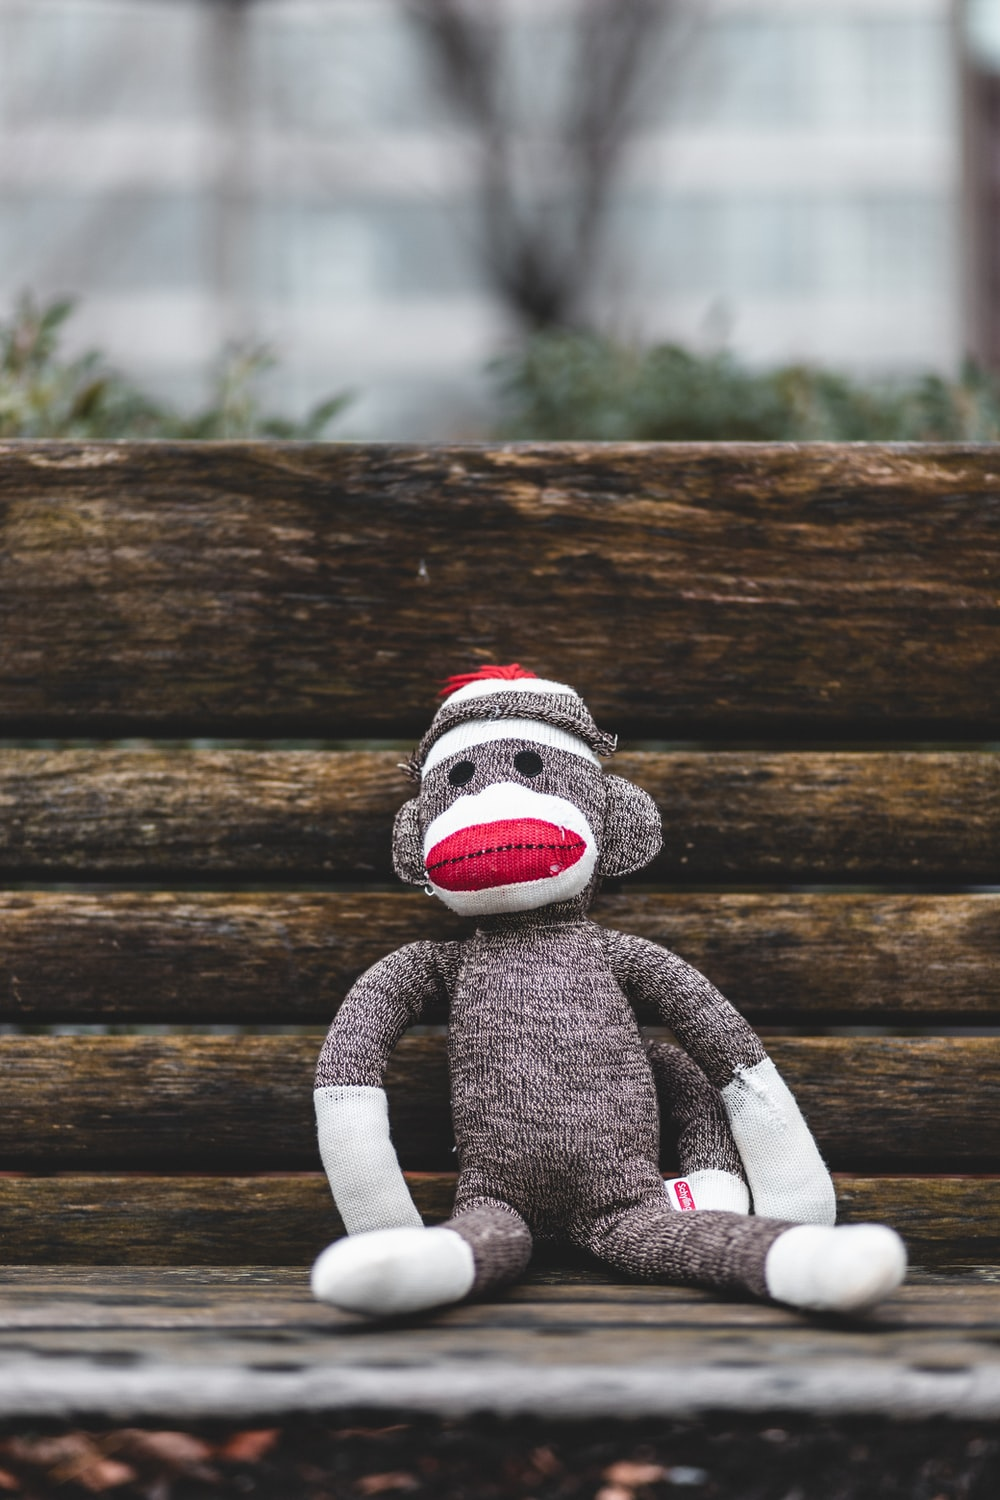 gray and white monkey plush toy sitting on wooden bench